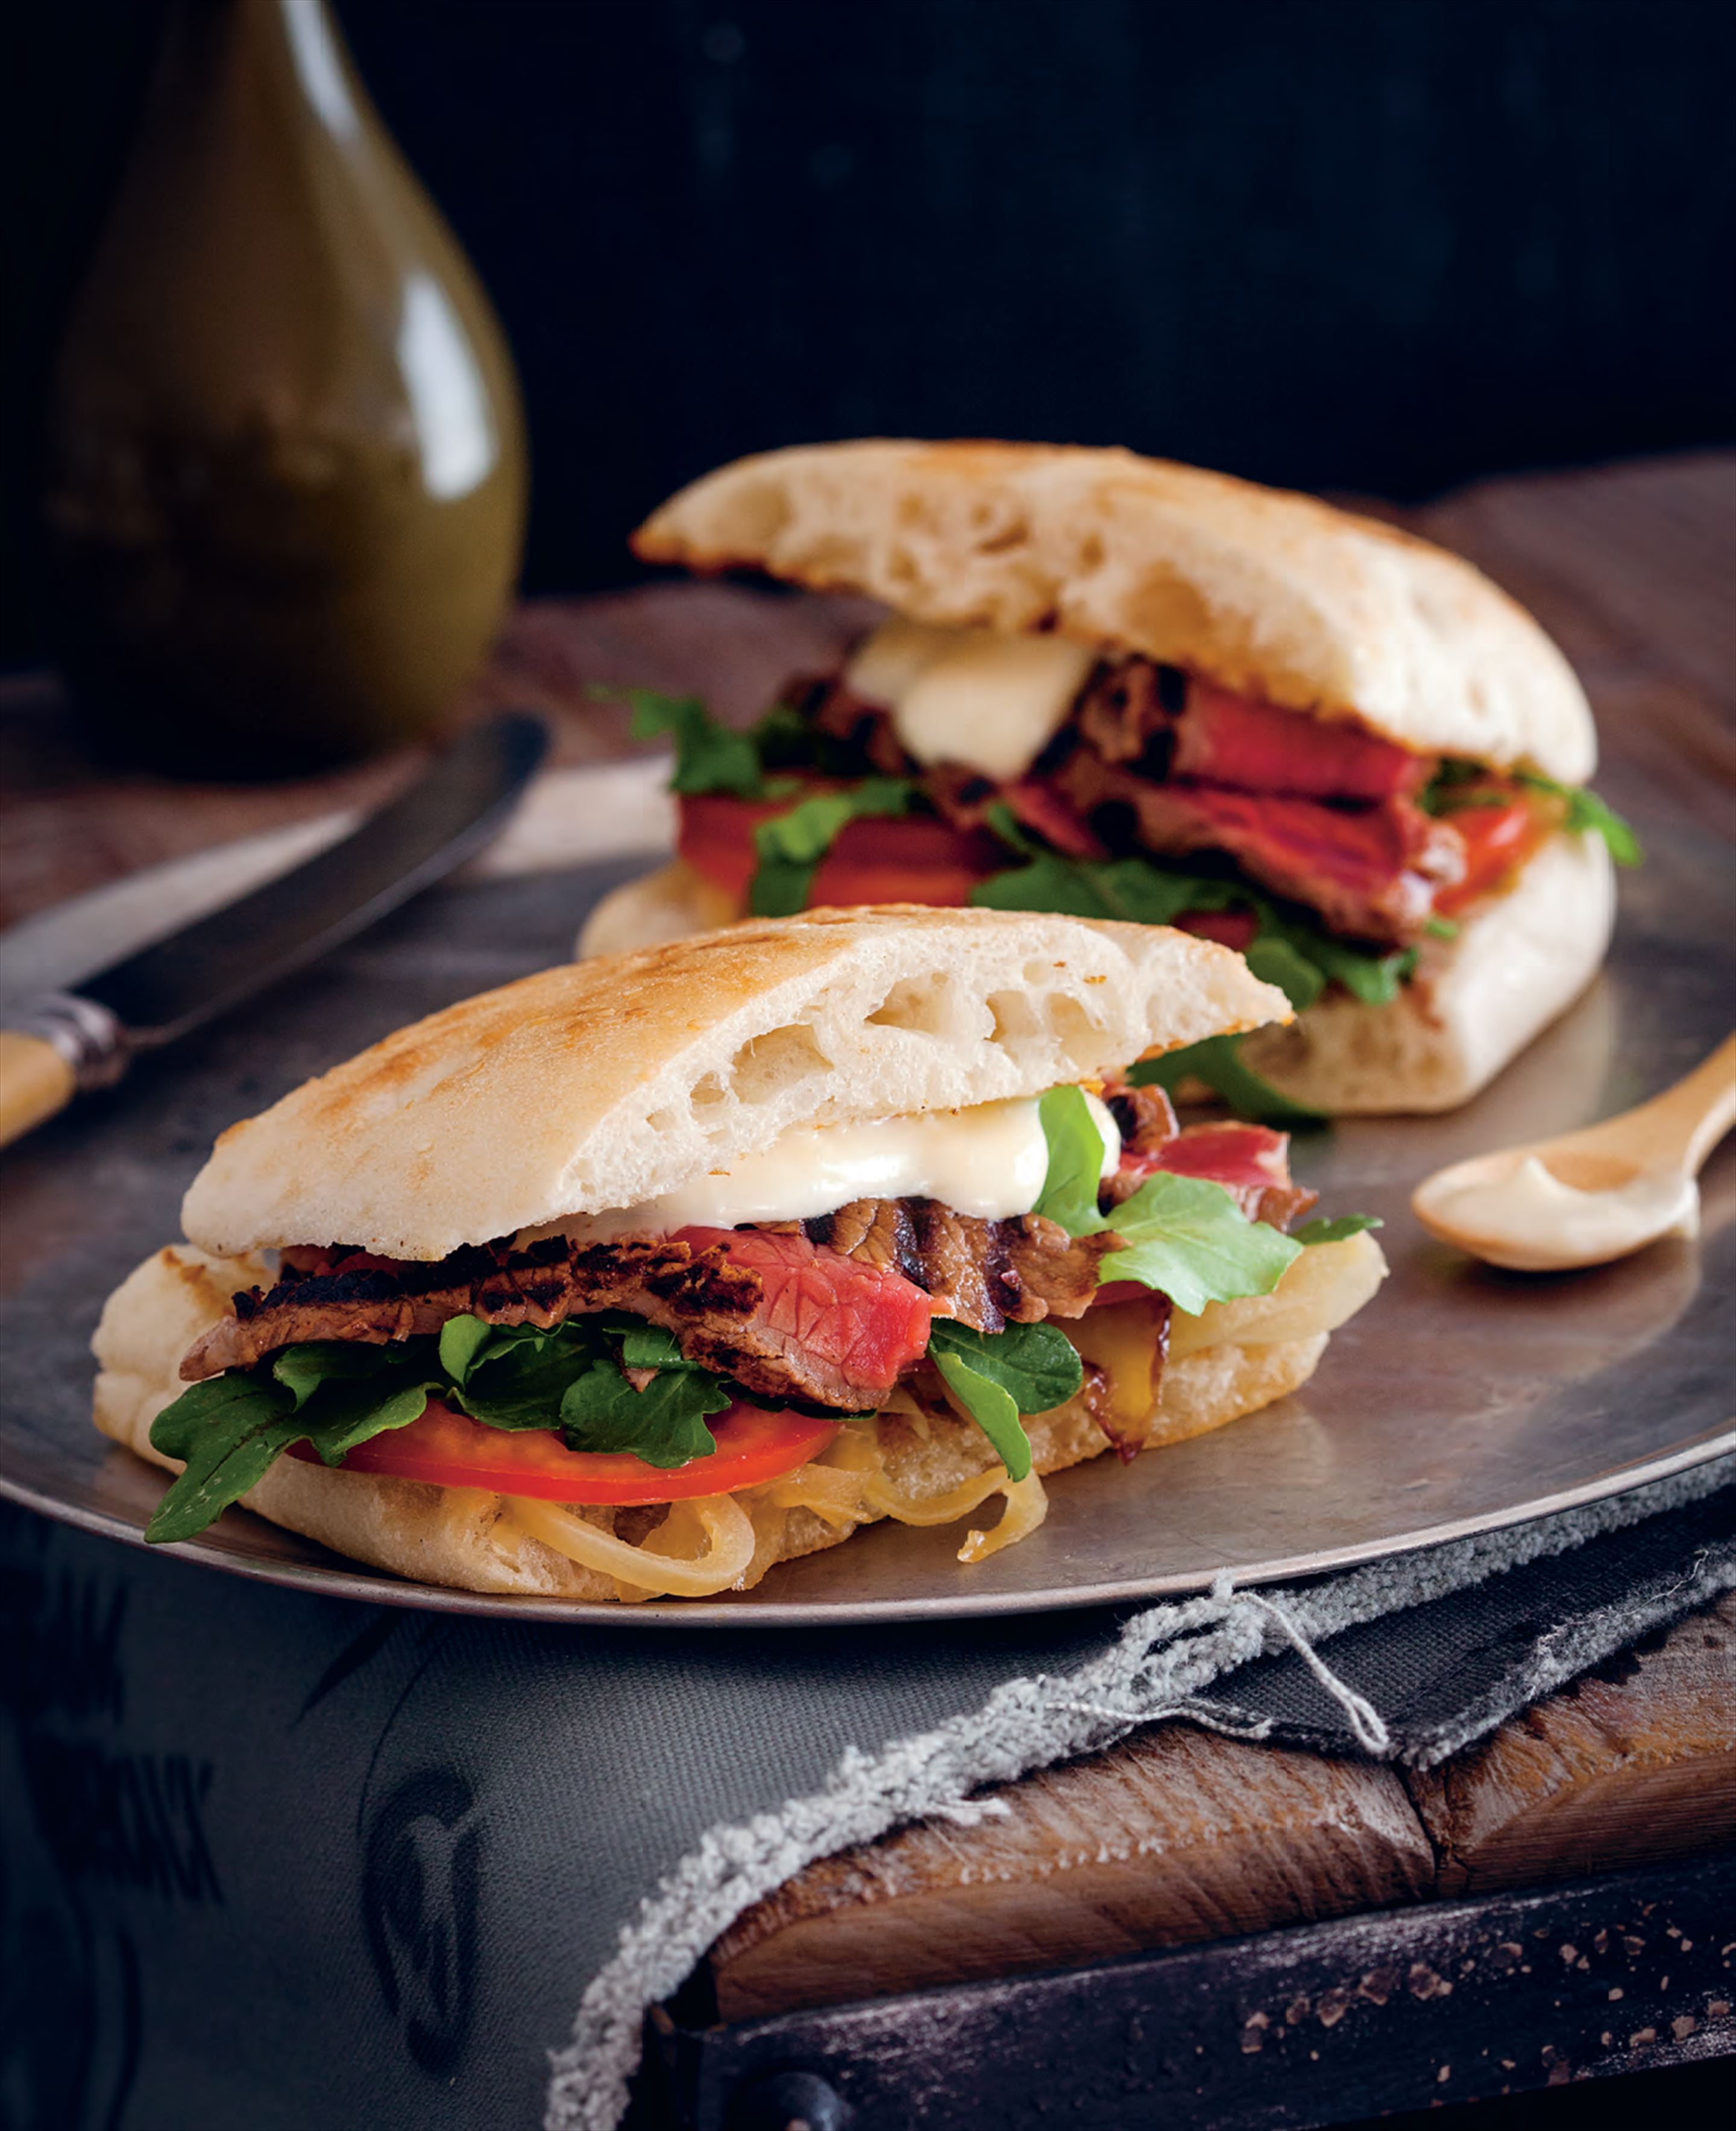 Aussie steak sandwich